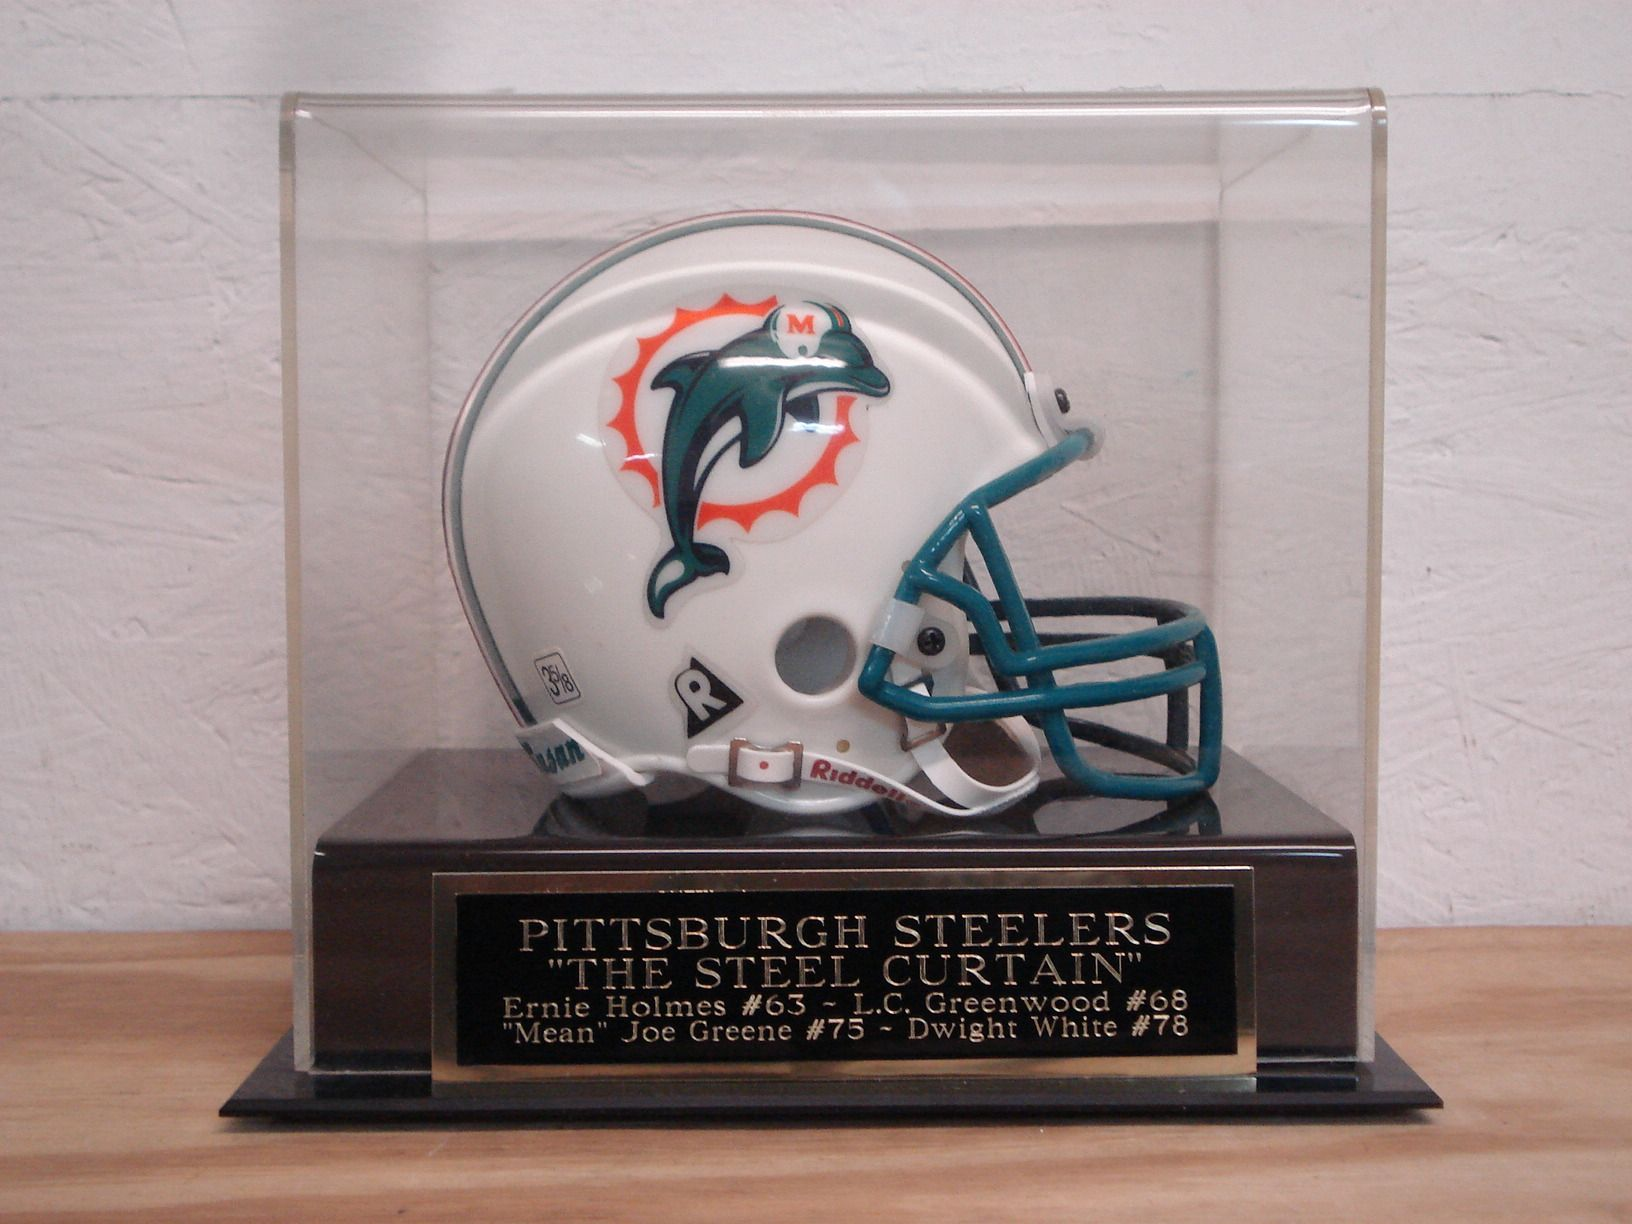 Pittsburgh Steelers Steel Curtain Acrylic Football Mini Helmet Case For Your Autographed Eagles Super Bowl Philadelphia Eagles Super Bowl Dallas Cowboys Signs